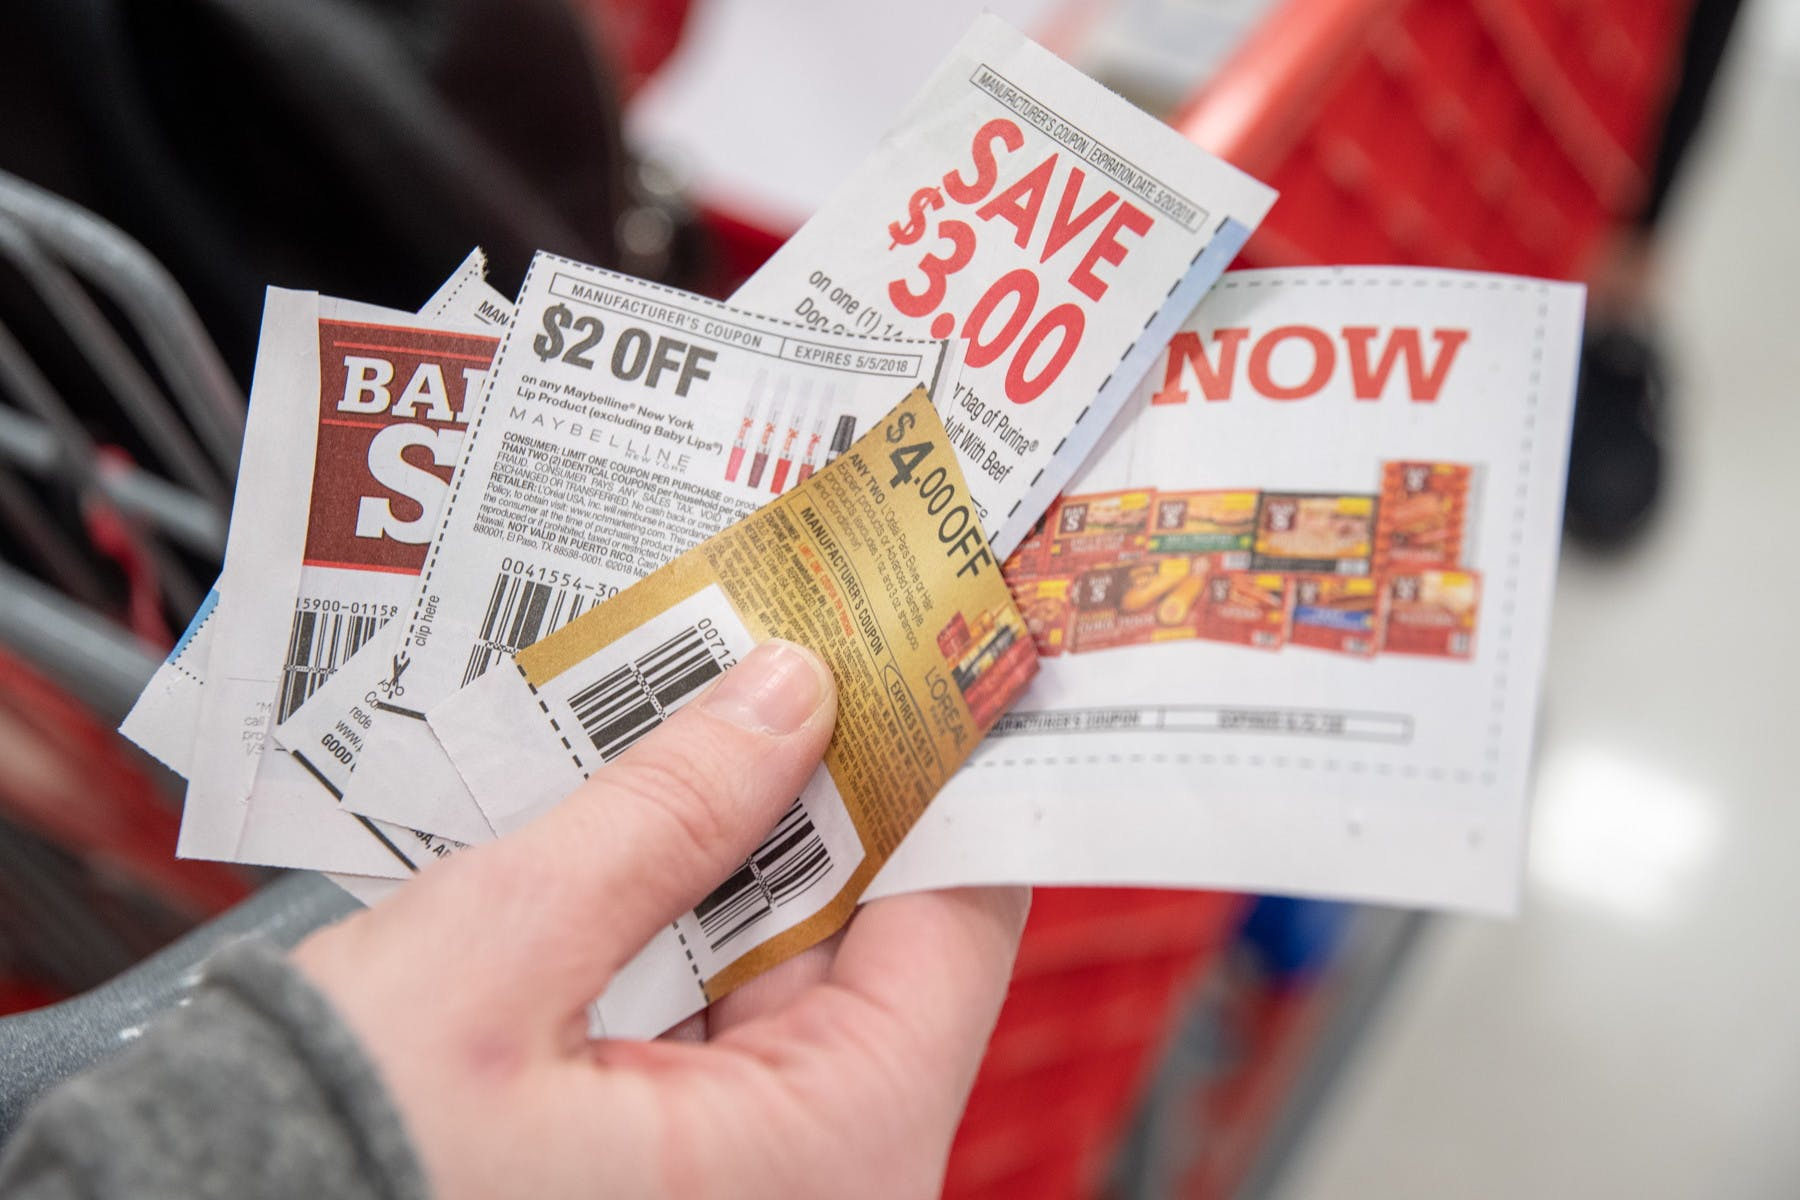 8 Types Of Coupons You Need To Know About To Save Big The Krazy Coupon Lady